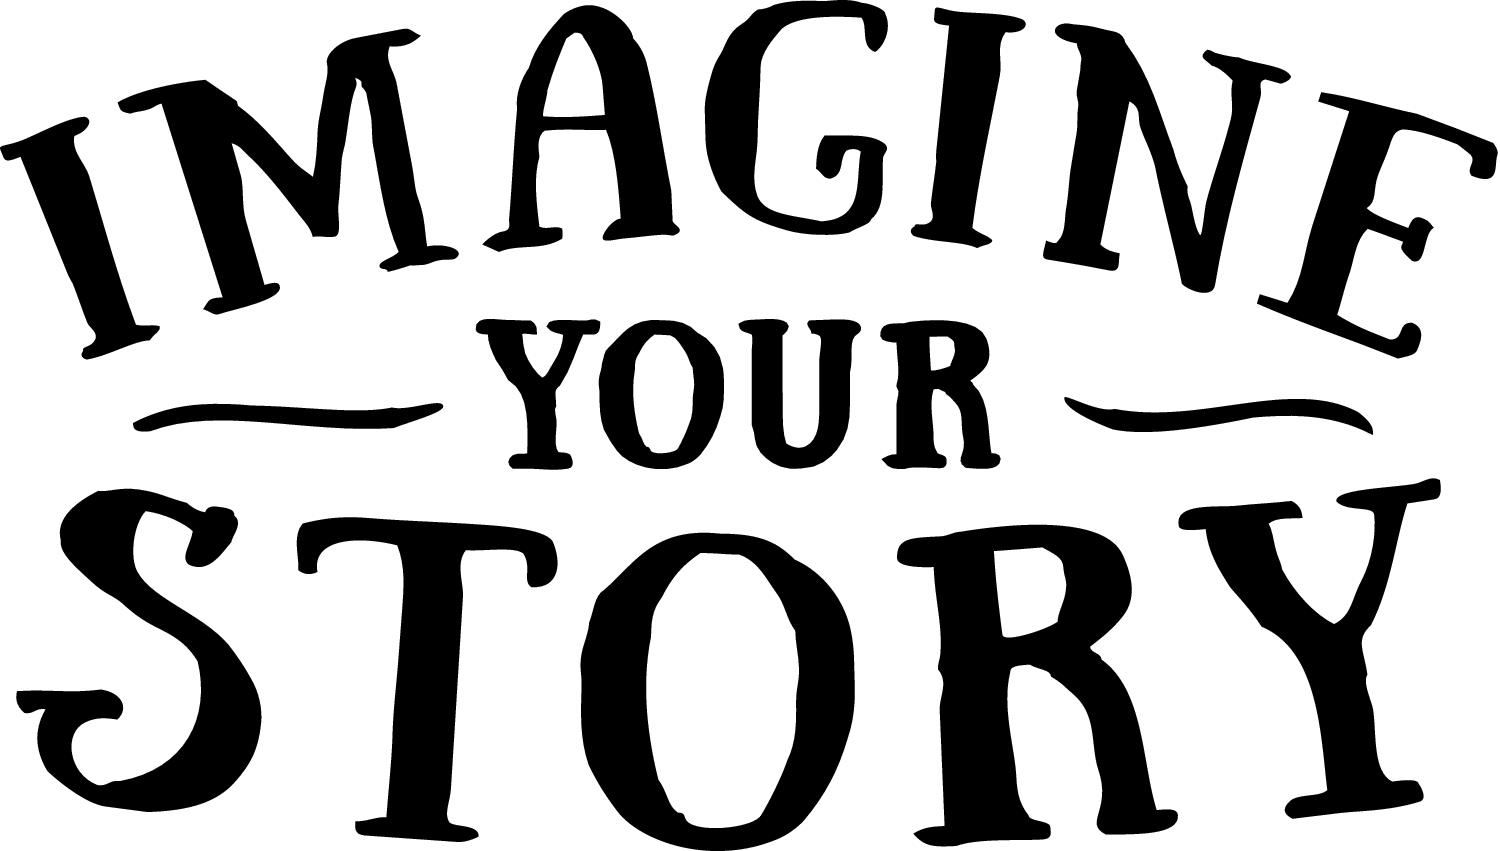 LISD Summer Reading Program: Imagine Your Story!